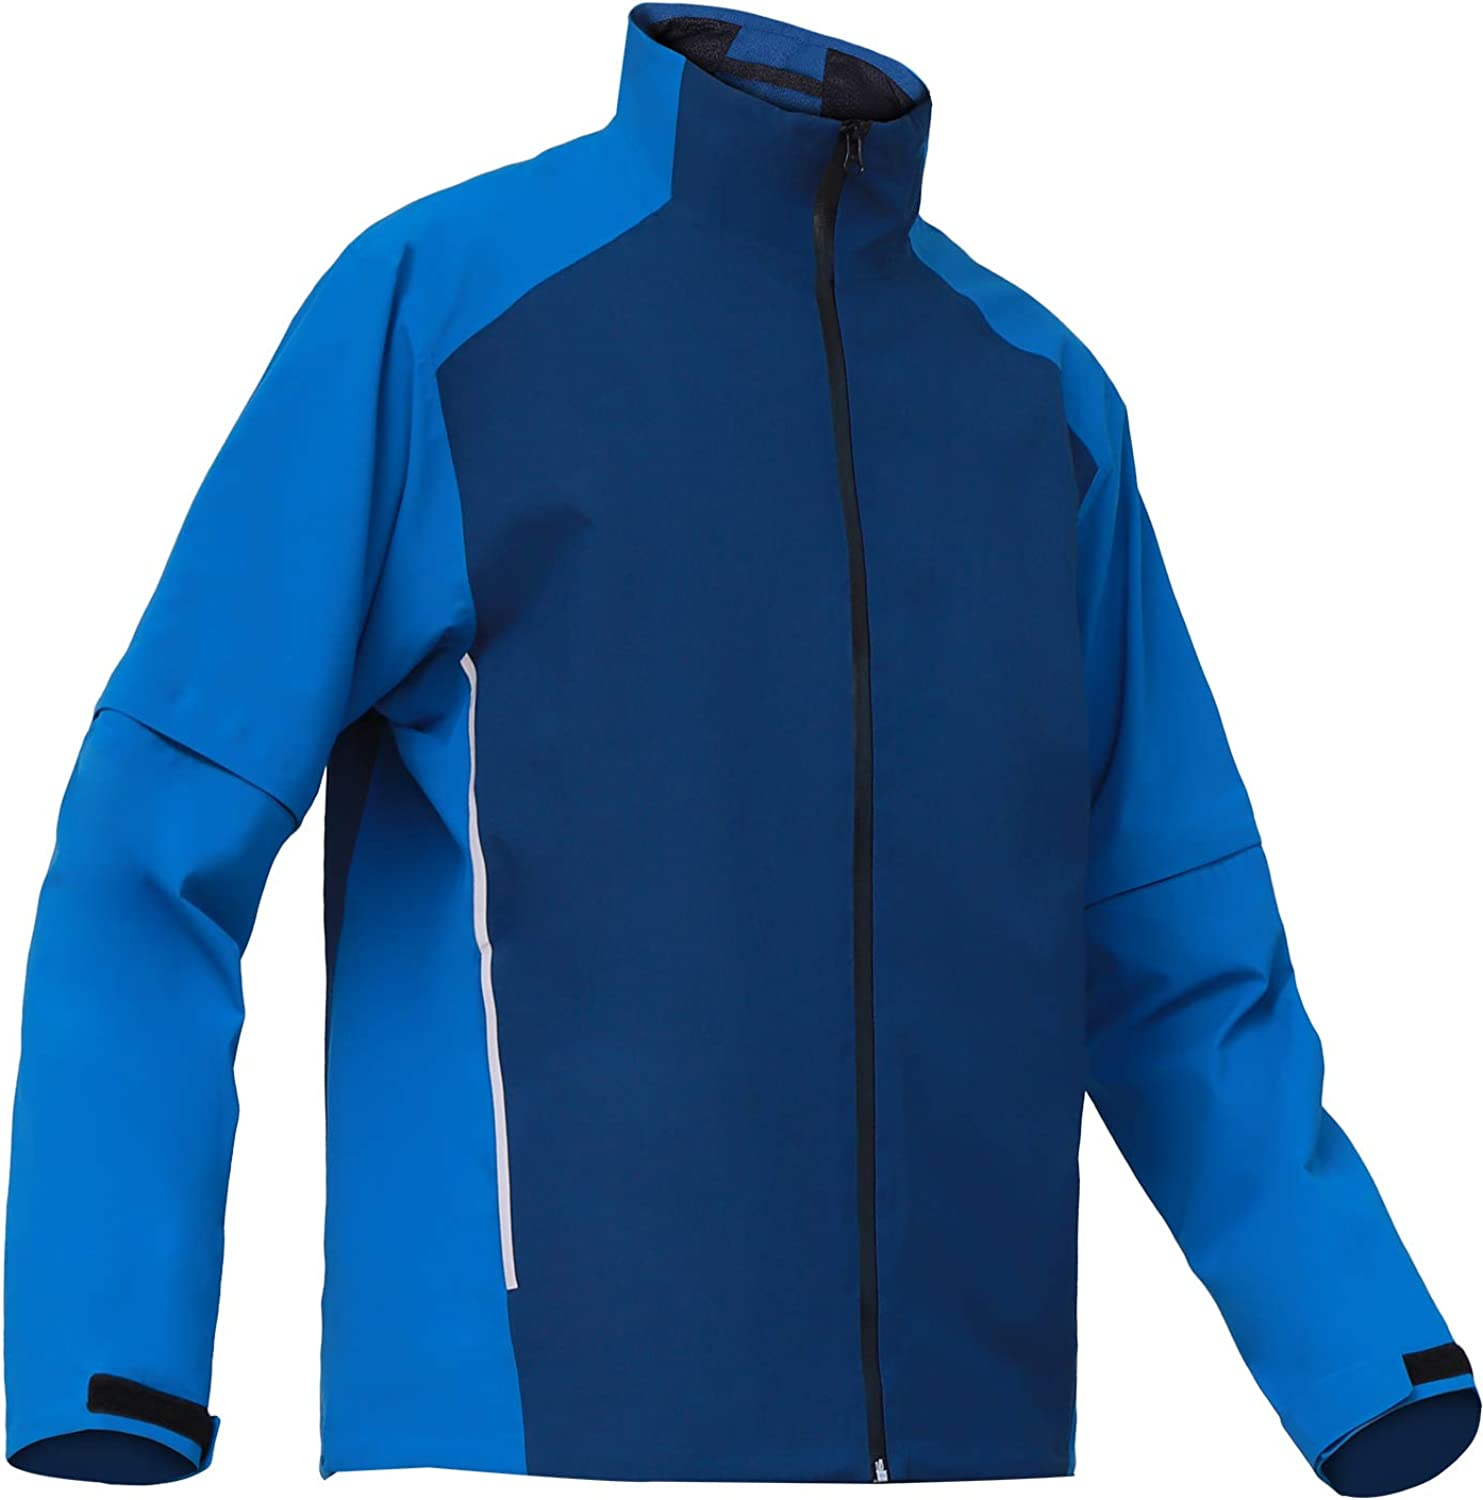 FIT SPACE Waterproof Golf Rain Jacket for Men 20K Performance Lightweight Rain Jackets for All Sports: Clothing